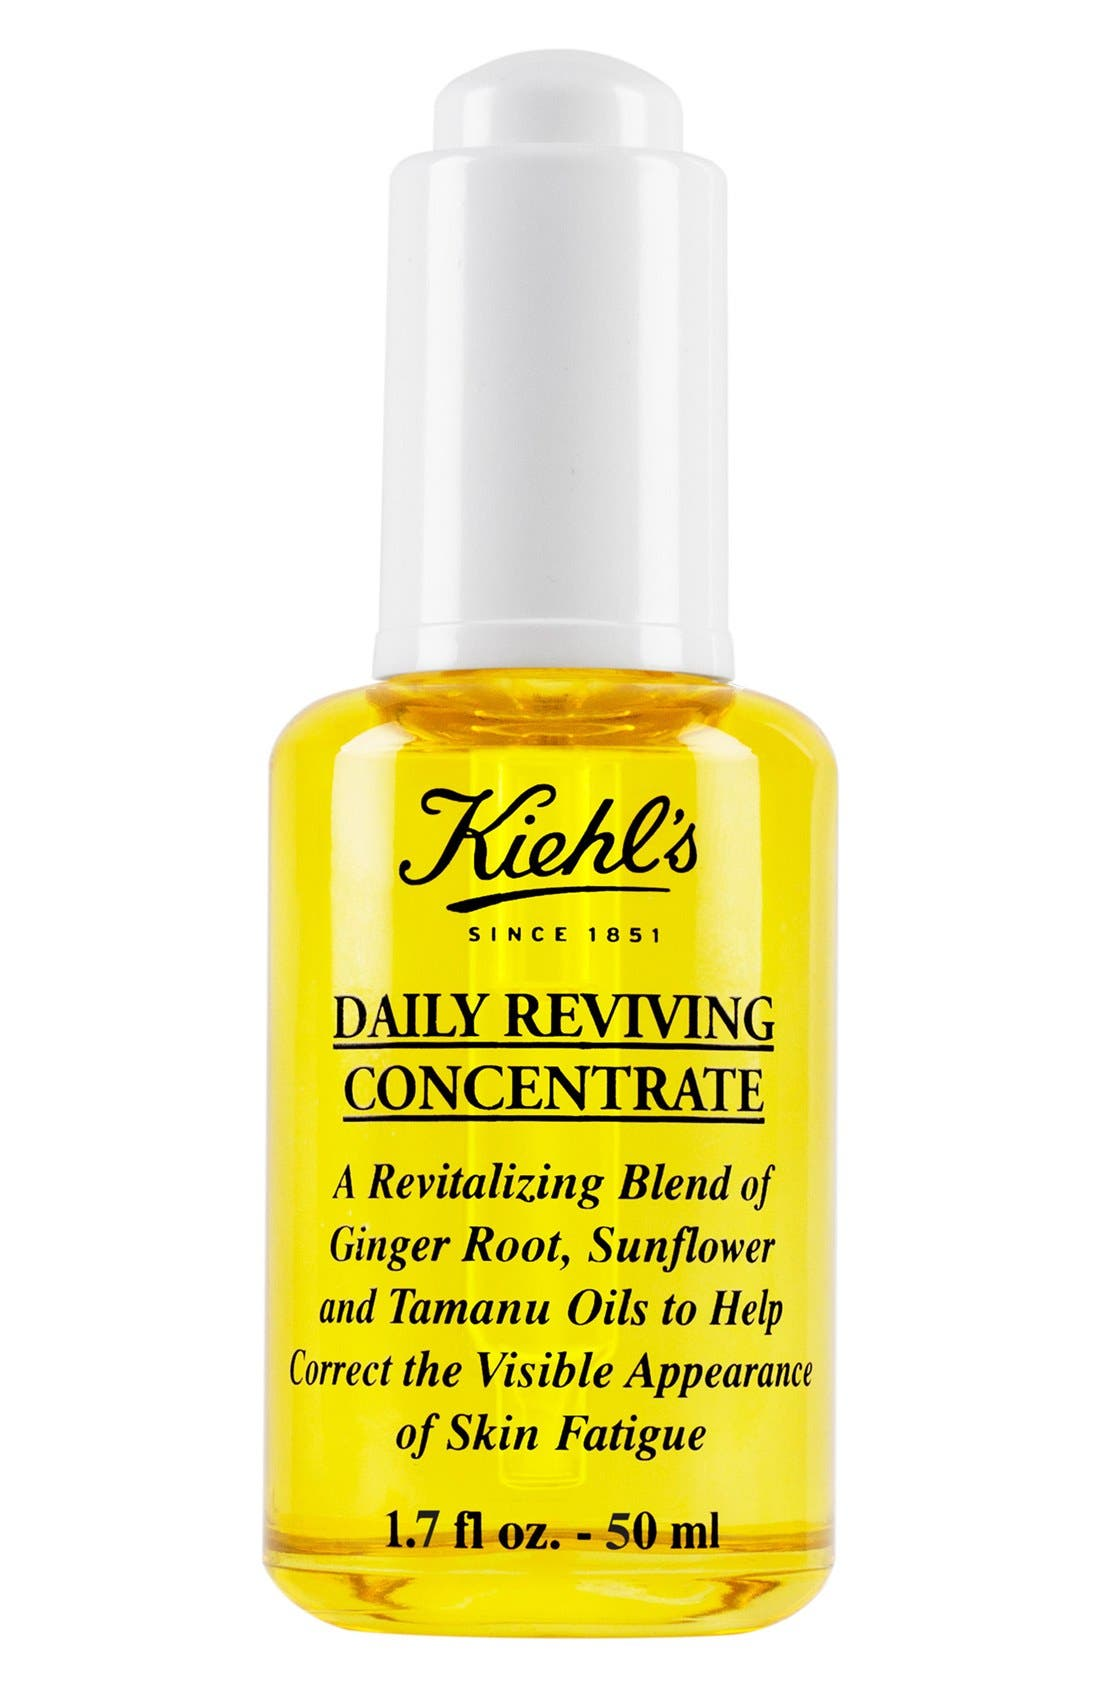 1851 Daily Reviving Concentrate Serum